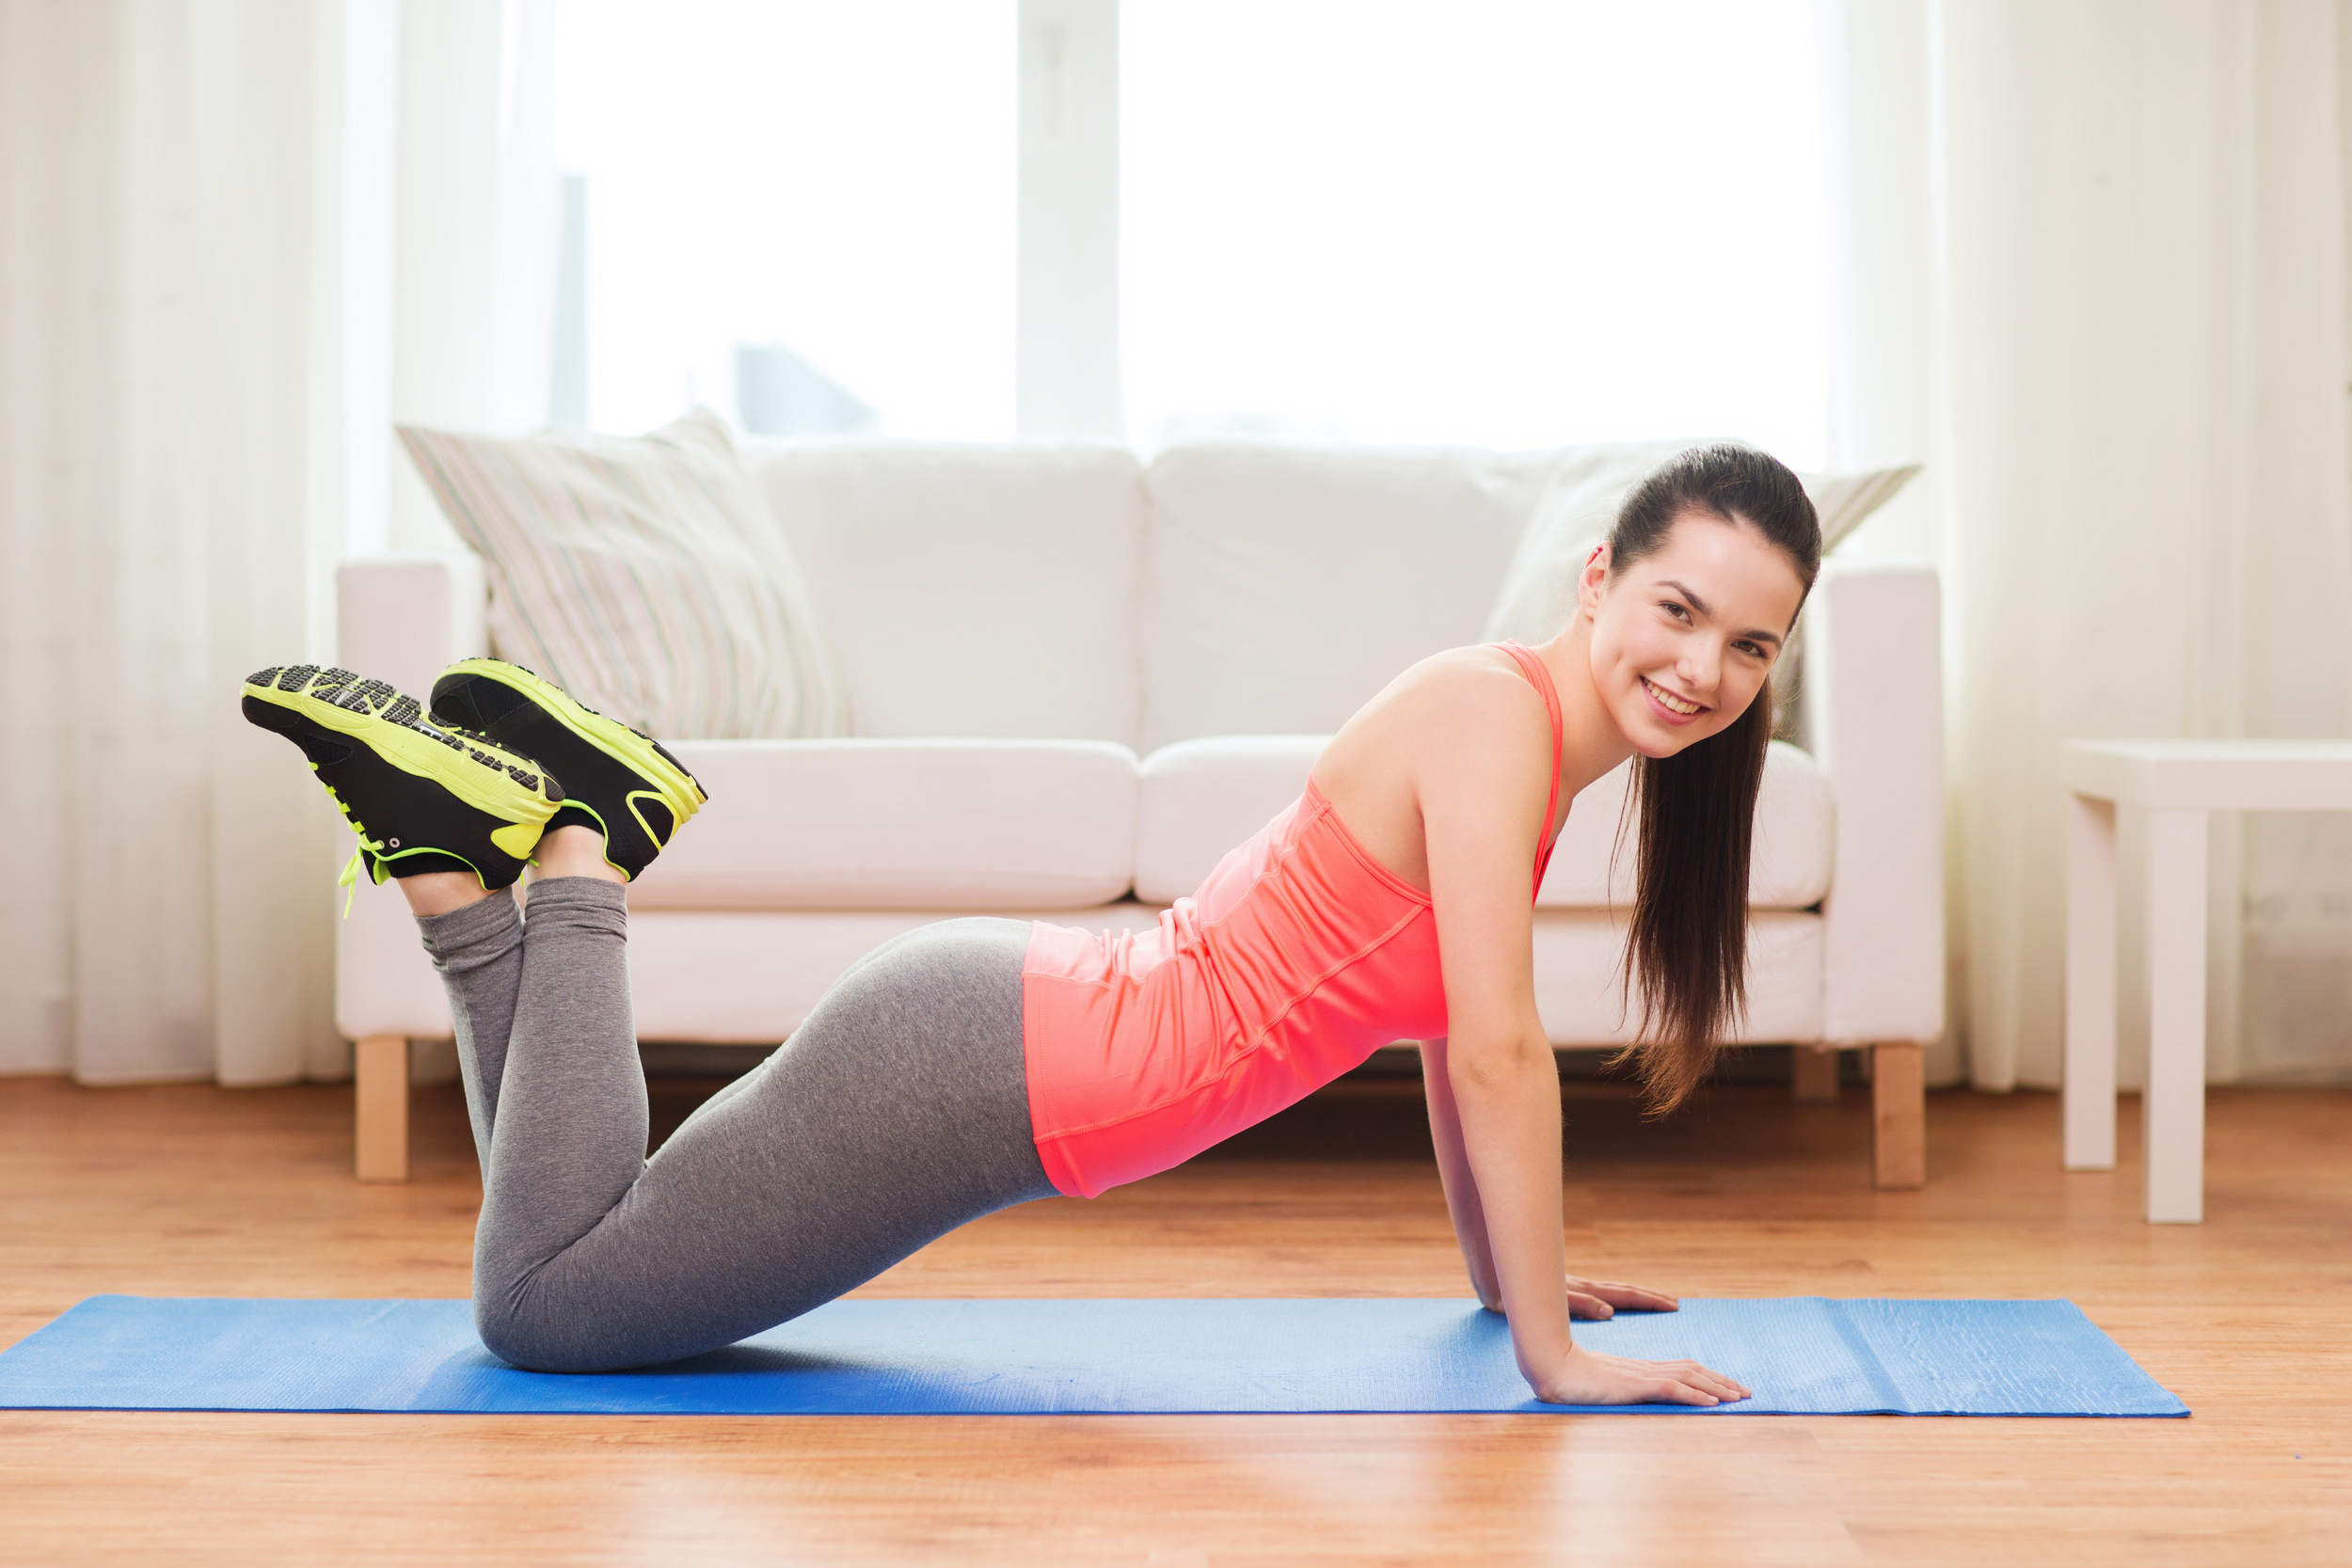 Push-ups on your knees or standing, pushing up from a wall, are a great place to start.